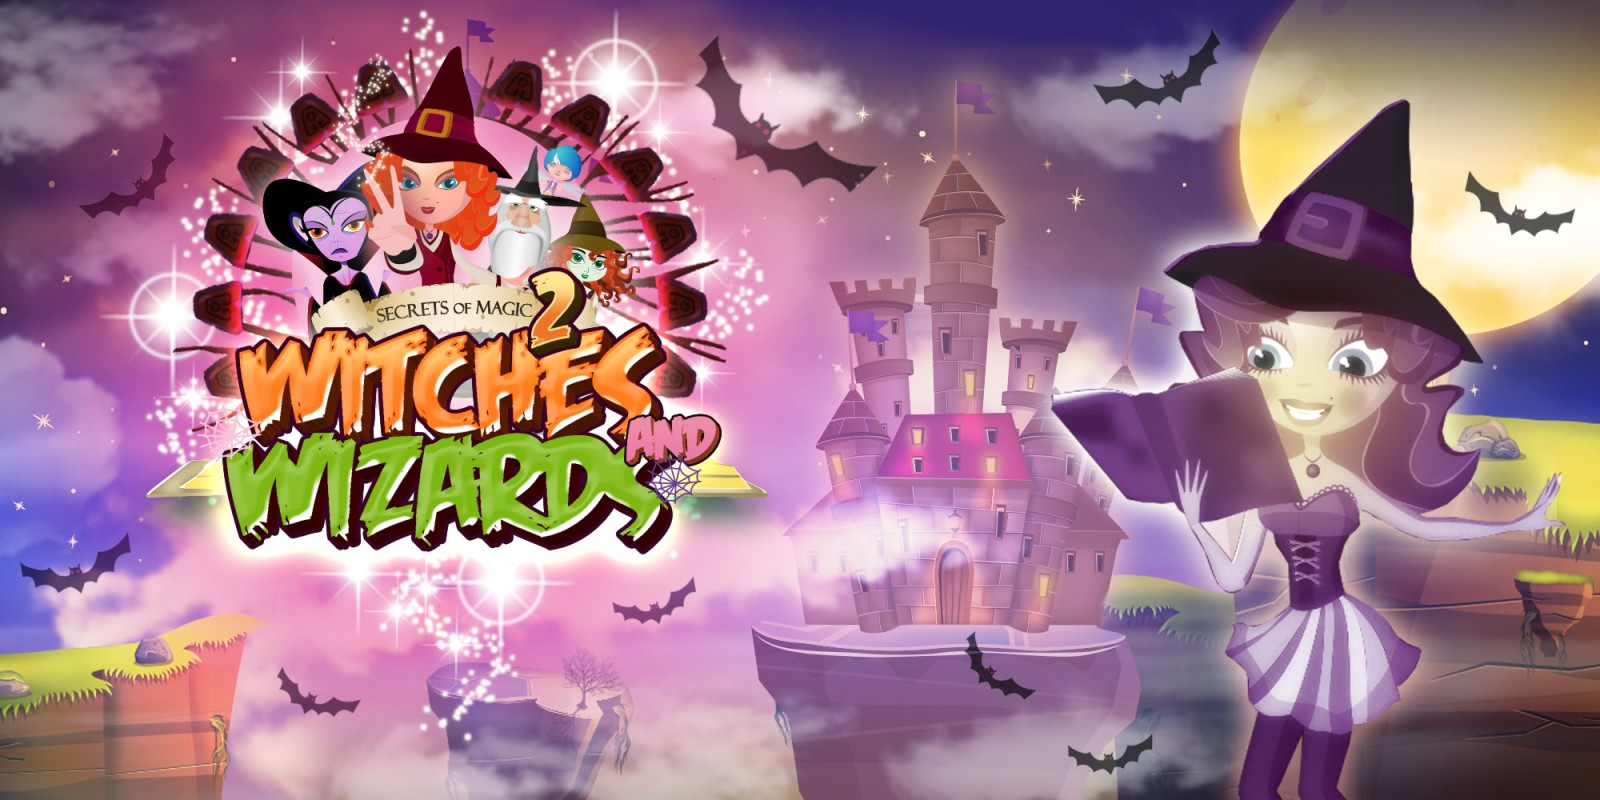 Secrets of Magic 2 - Witches & Wizards